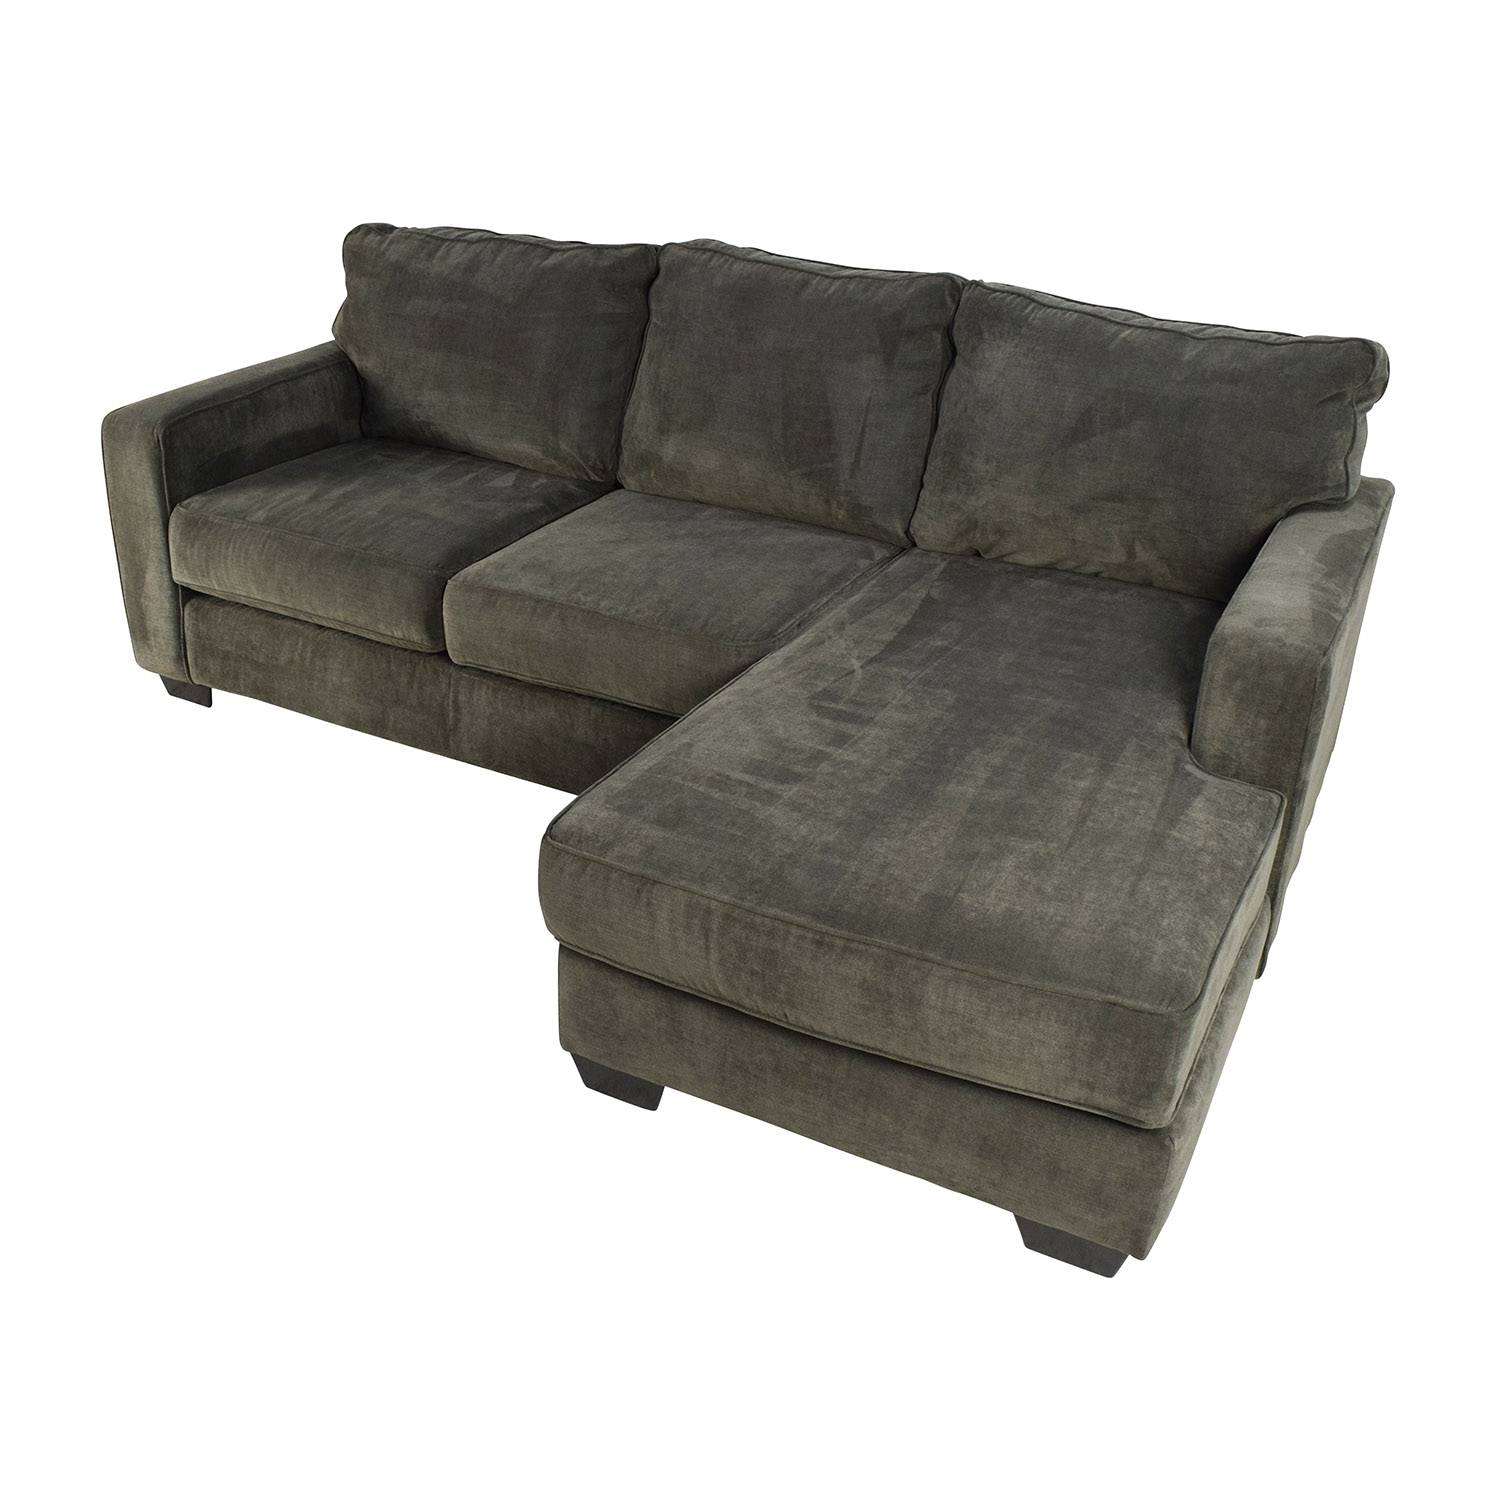 37% Off - Jennifer Convertibles Jennifer Convertibles Sectional intended for Jennifer Sofas And Sectionals (Image 1 of 15)